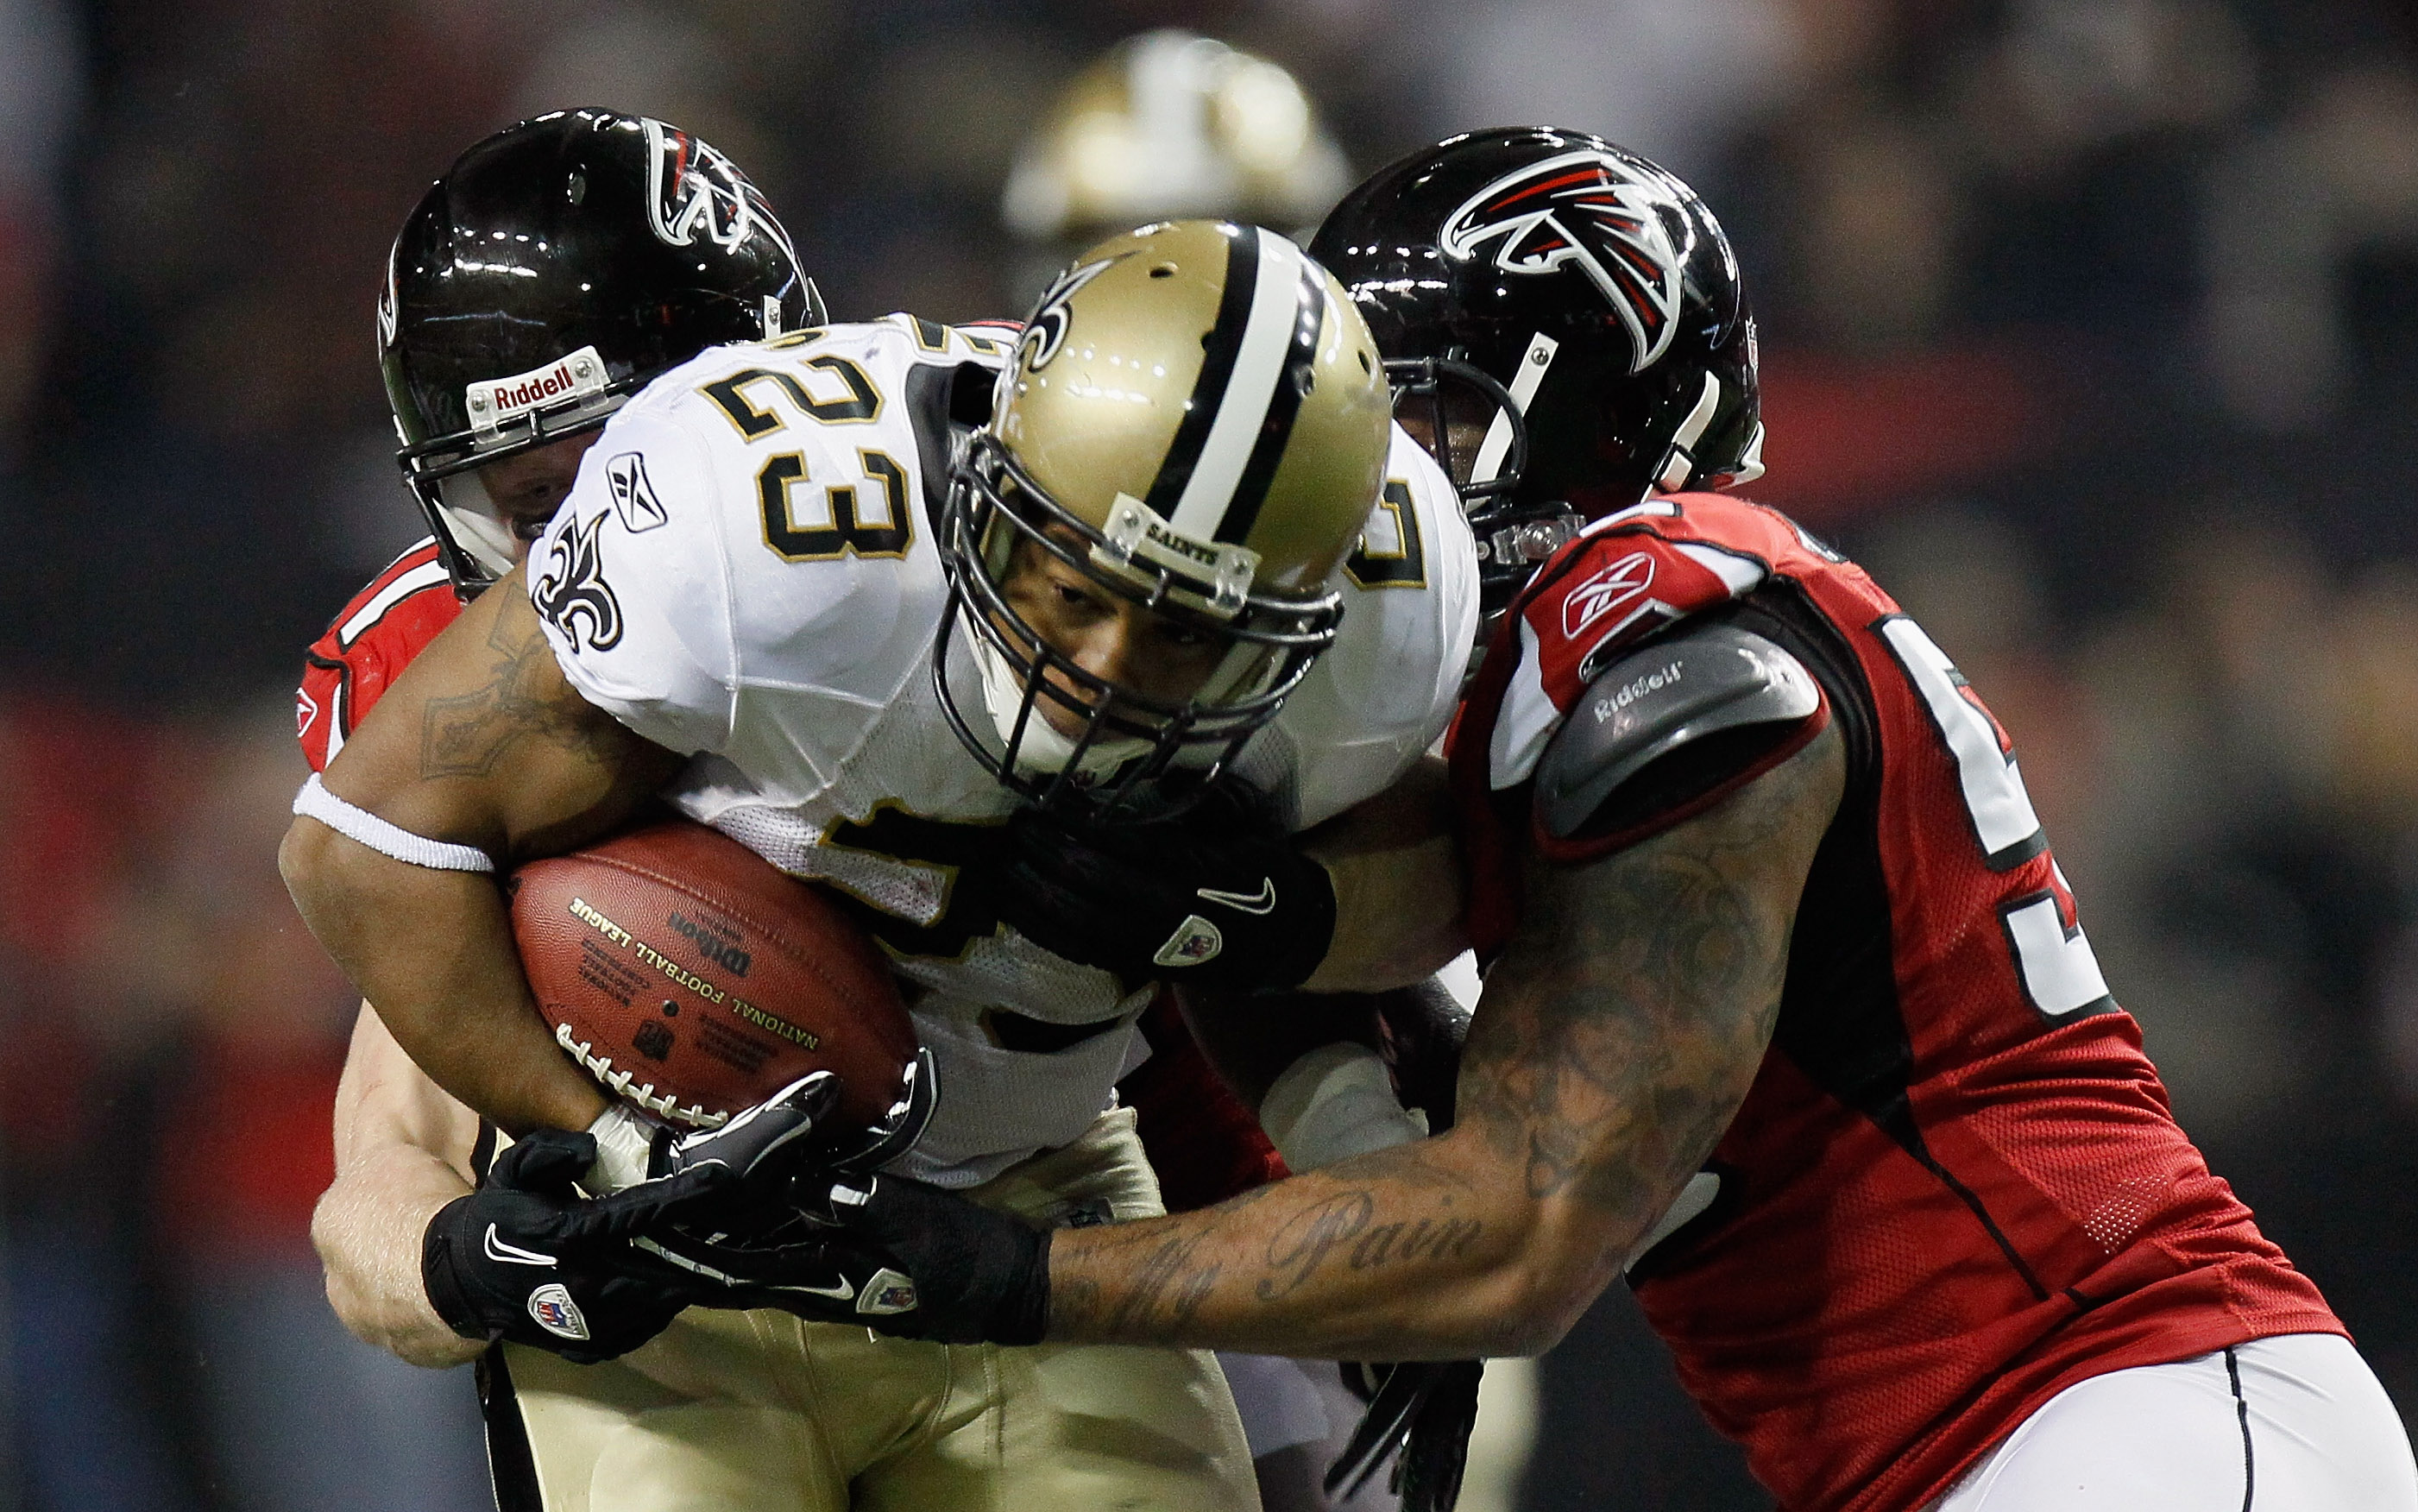 ATLANTA, GA - DECEMBER 27:  Pierre Thomas #23 of the New Orleans Saints fights off two defenders in the first half during the game against the Atlanta Falcons at the Georgia Dome on December 27, 2010 in Atlanta, Georgia.  (Photo by Kevin C. Cox/Getty Imag